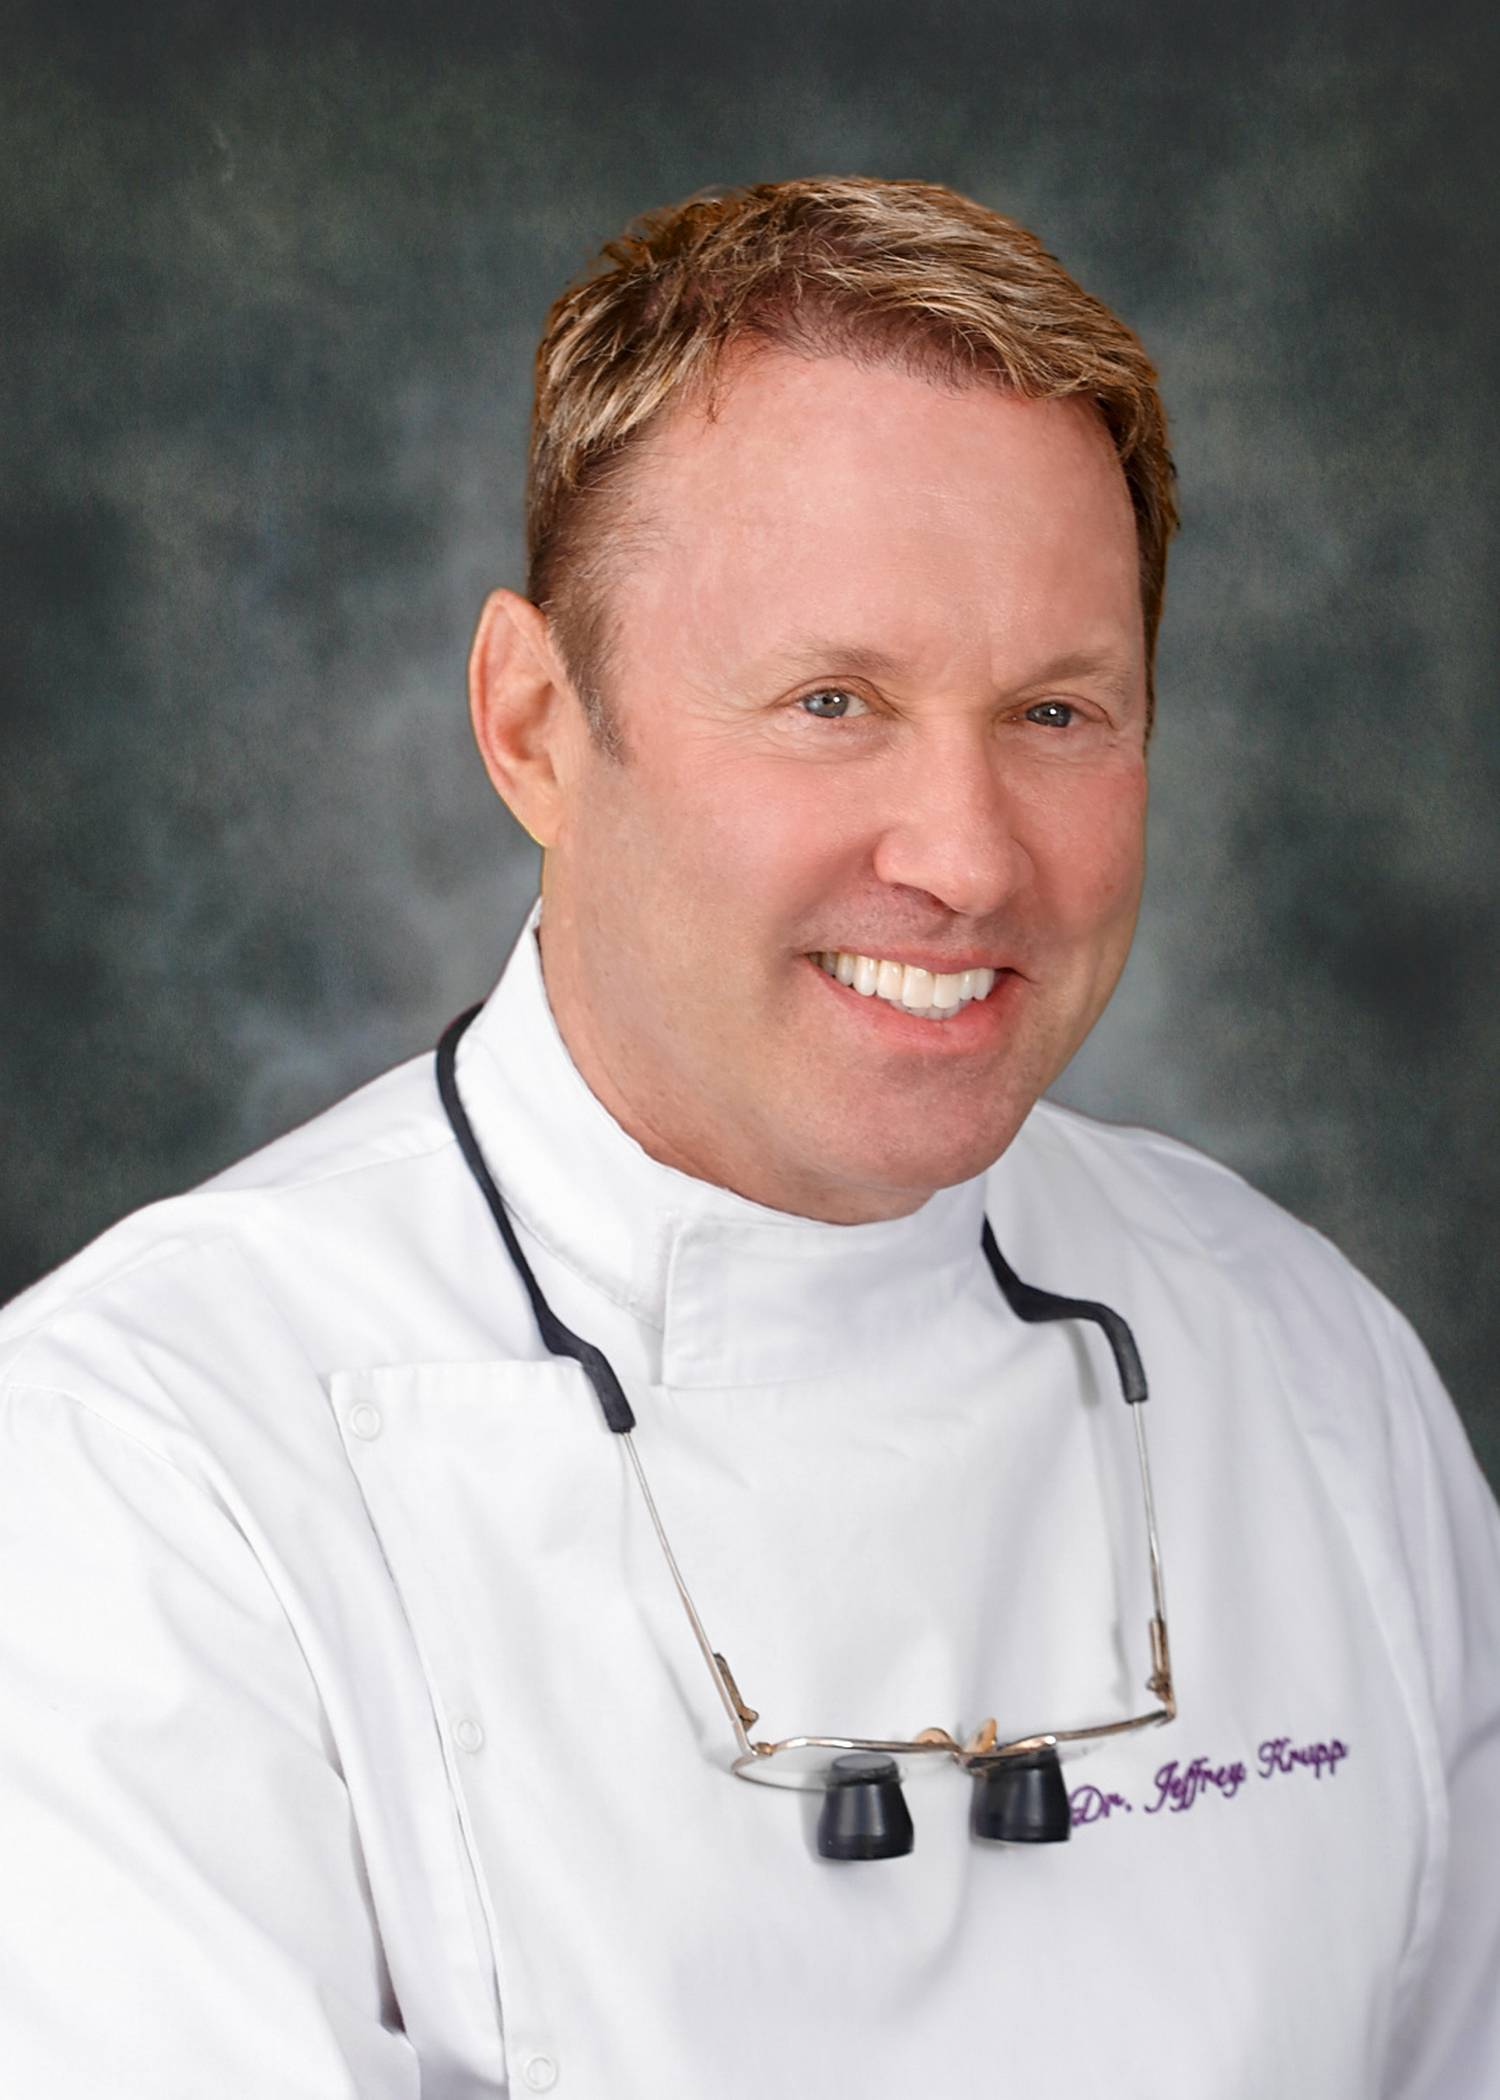 JEFFREY D. KRUPP, DDS, MS